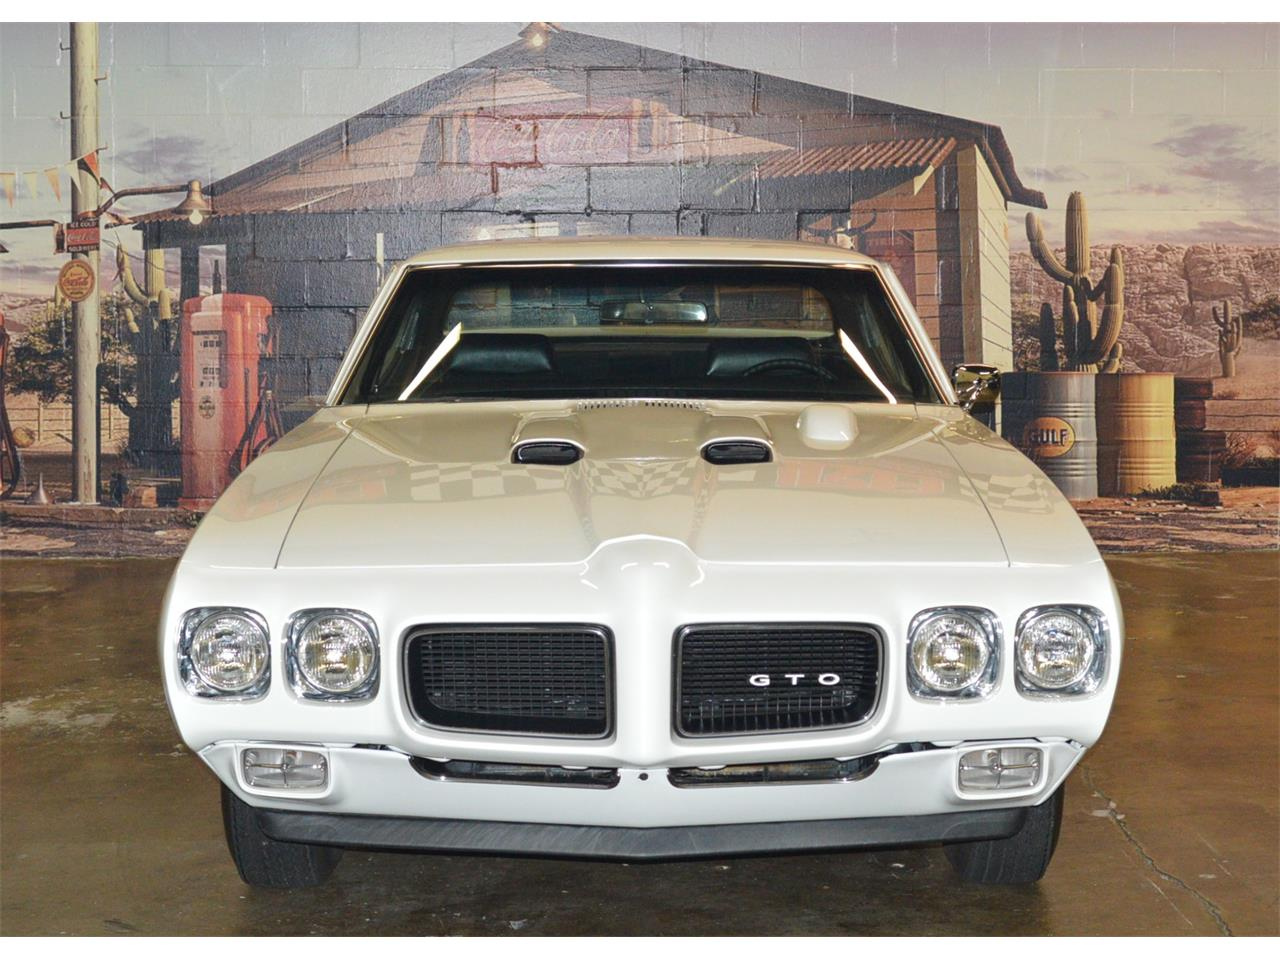 Large Picture of Classic '70 Pontiac GTO (The Judge) located in BRISTOL Pennsylvania - $69,900.00 Offered by L.R.A. Enterprises Auto Museum & Sales - KJ17